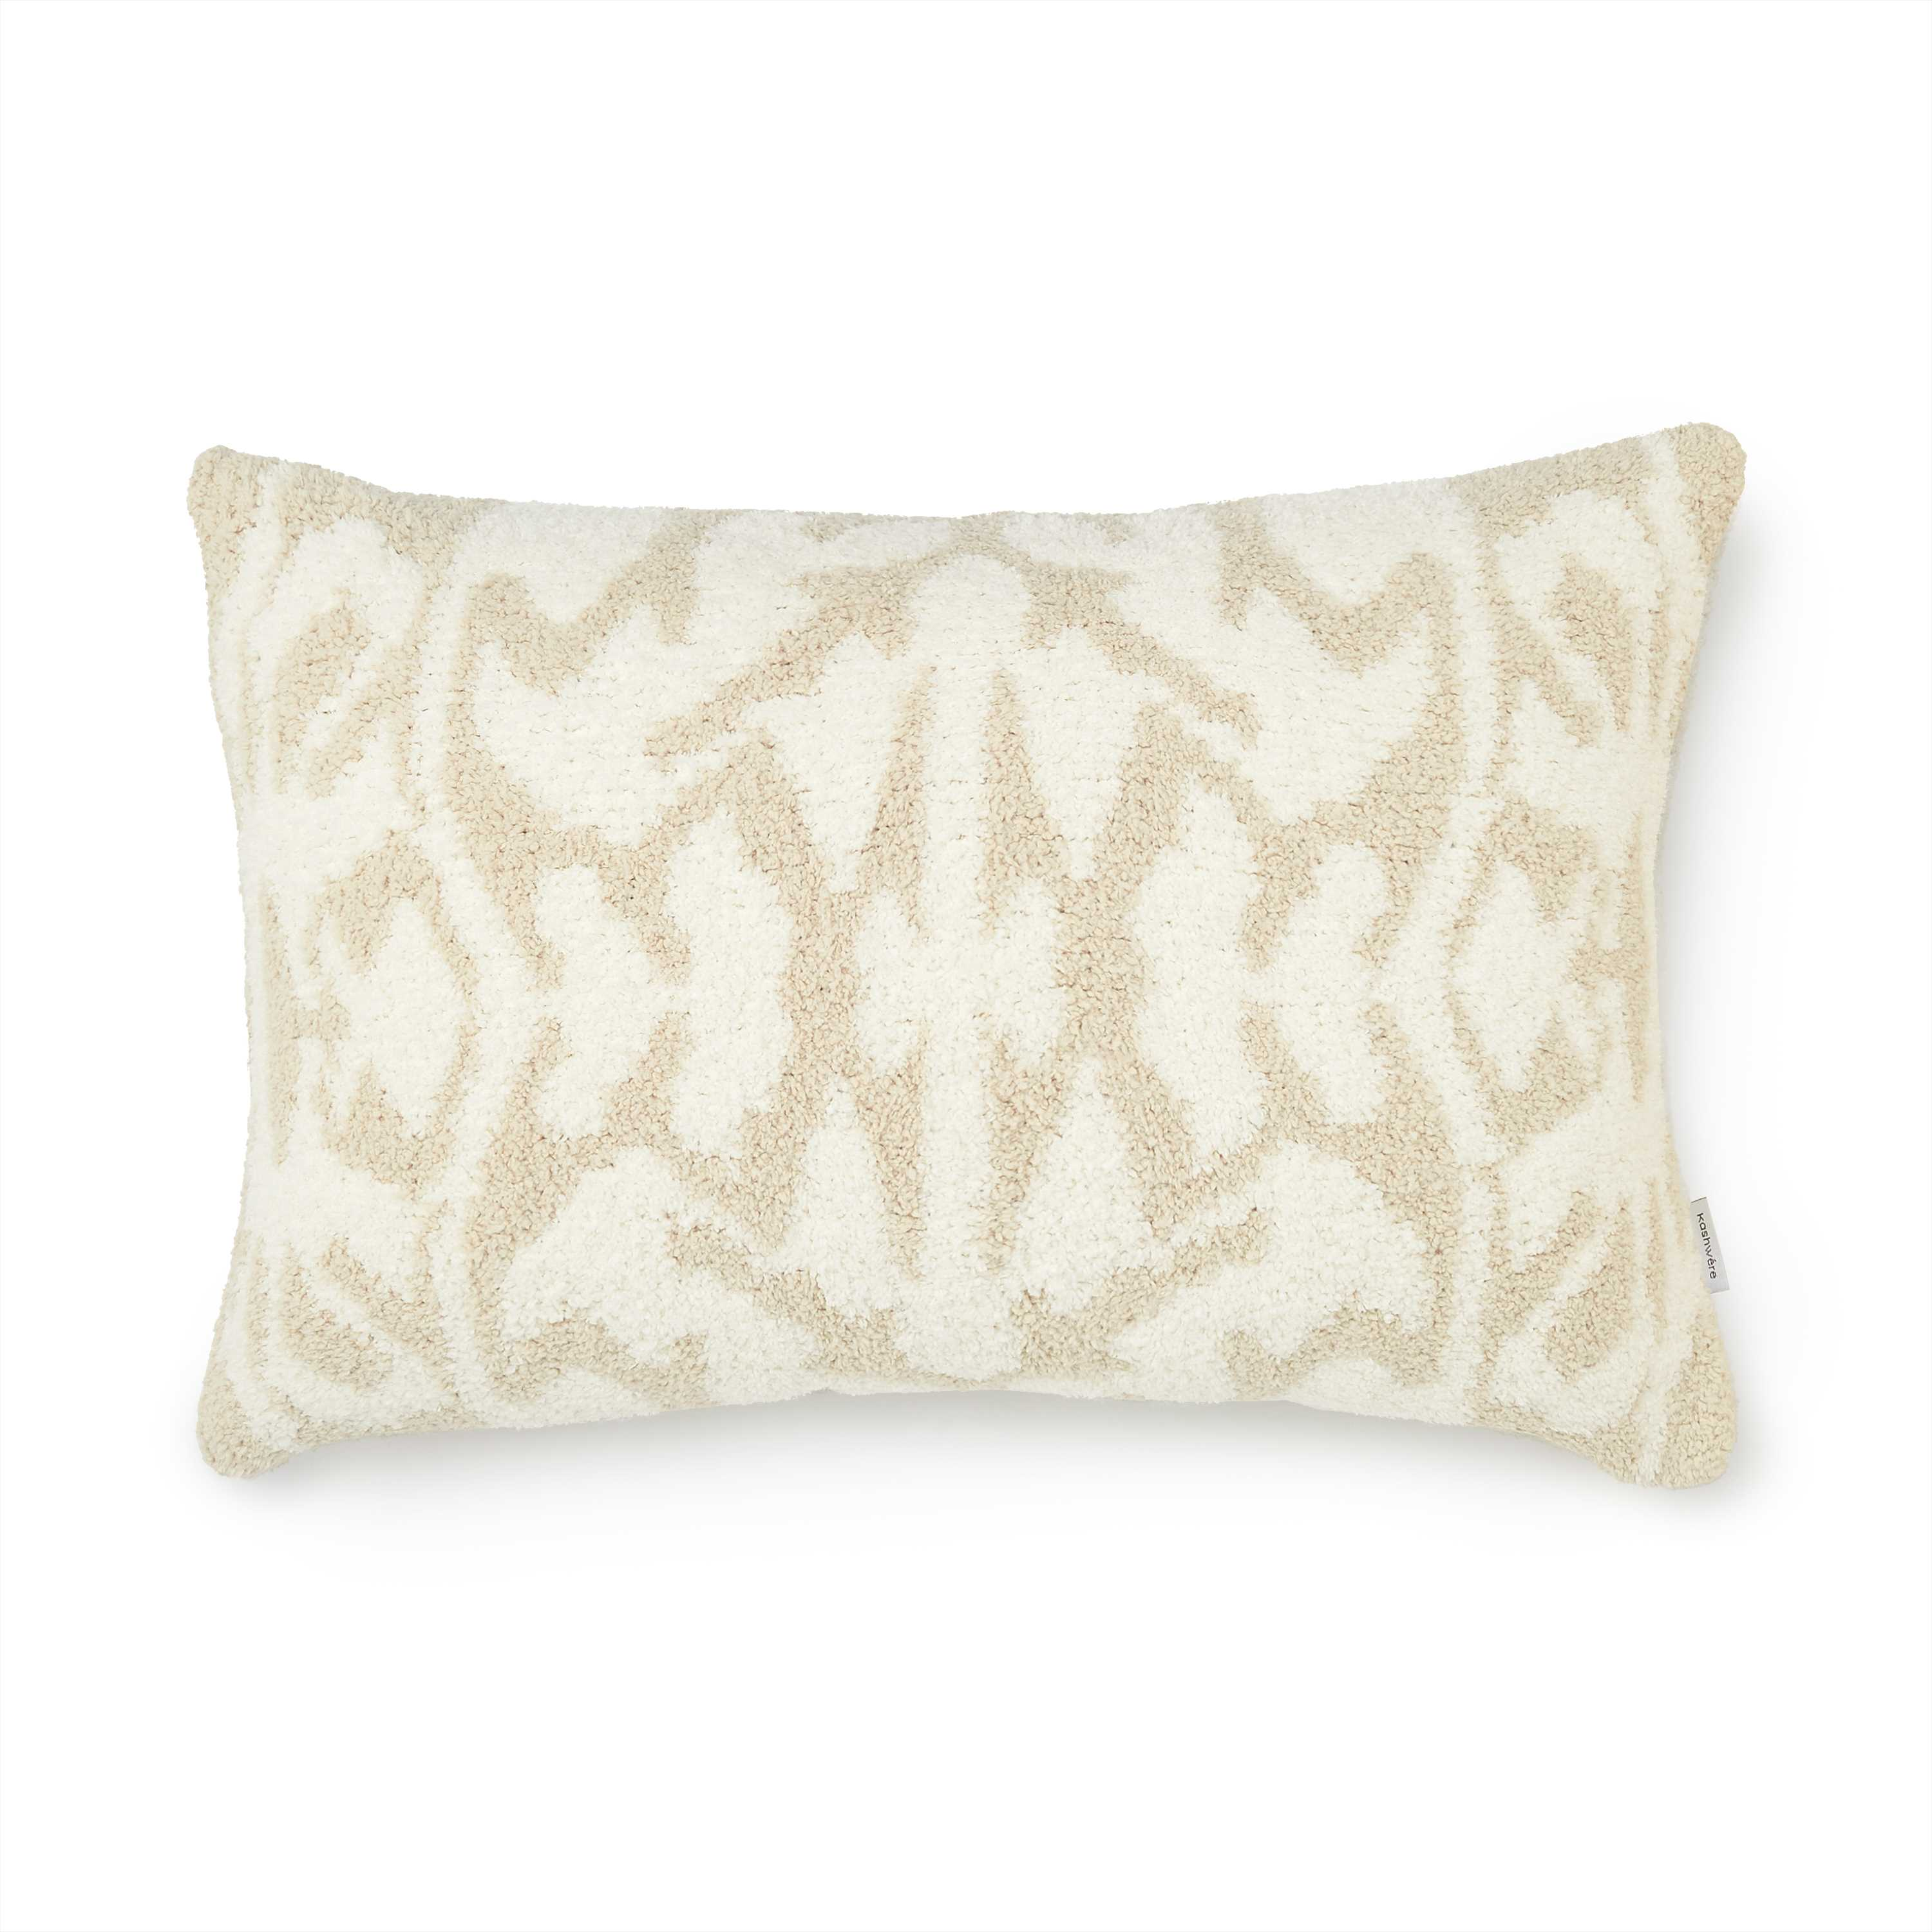 DAMASK PILLOW CASE